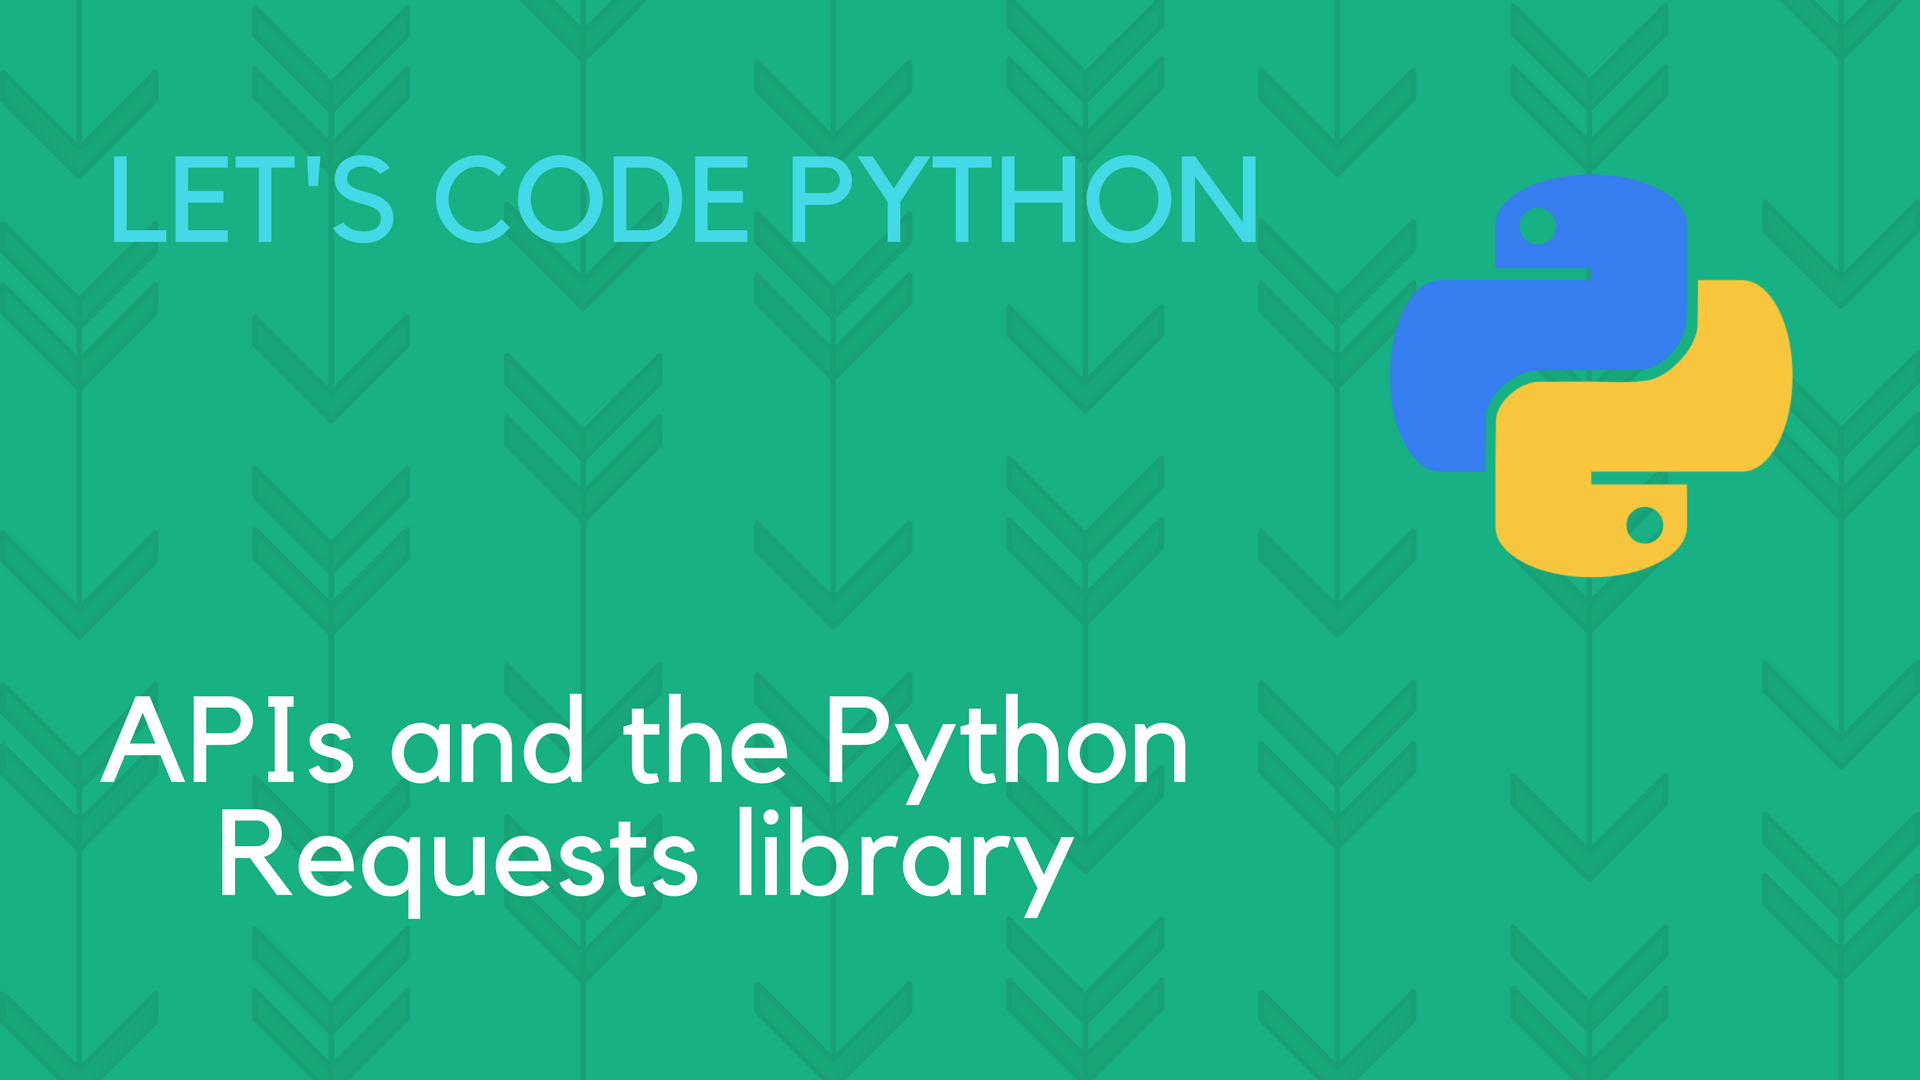 APIs and the Python Requests library